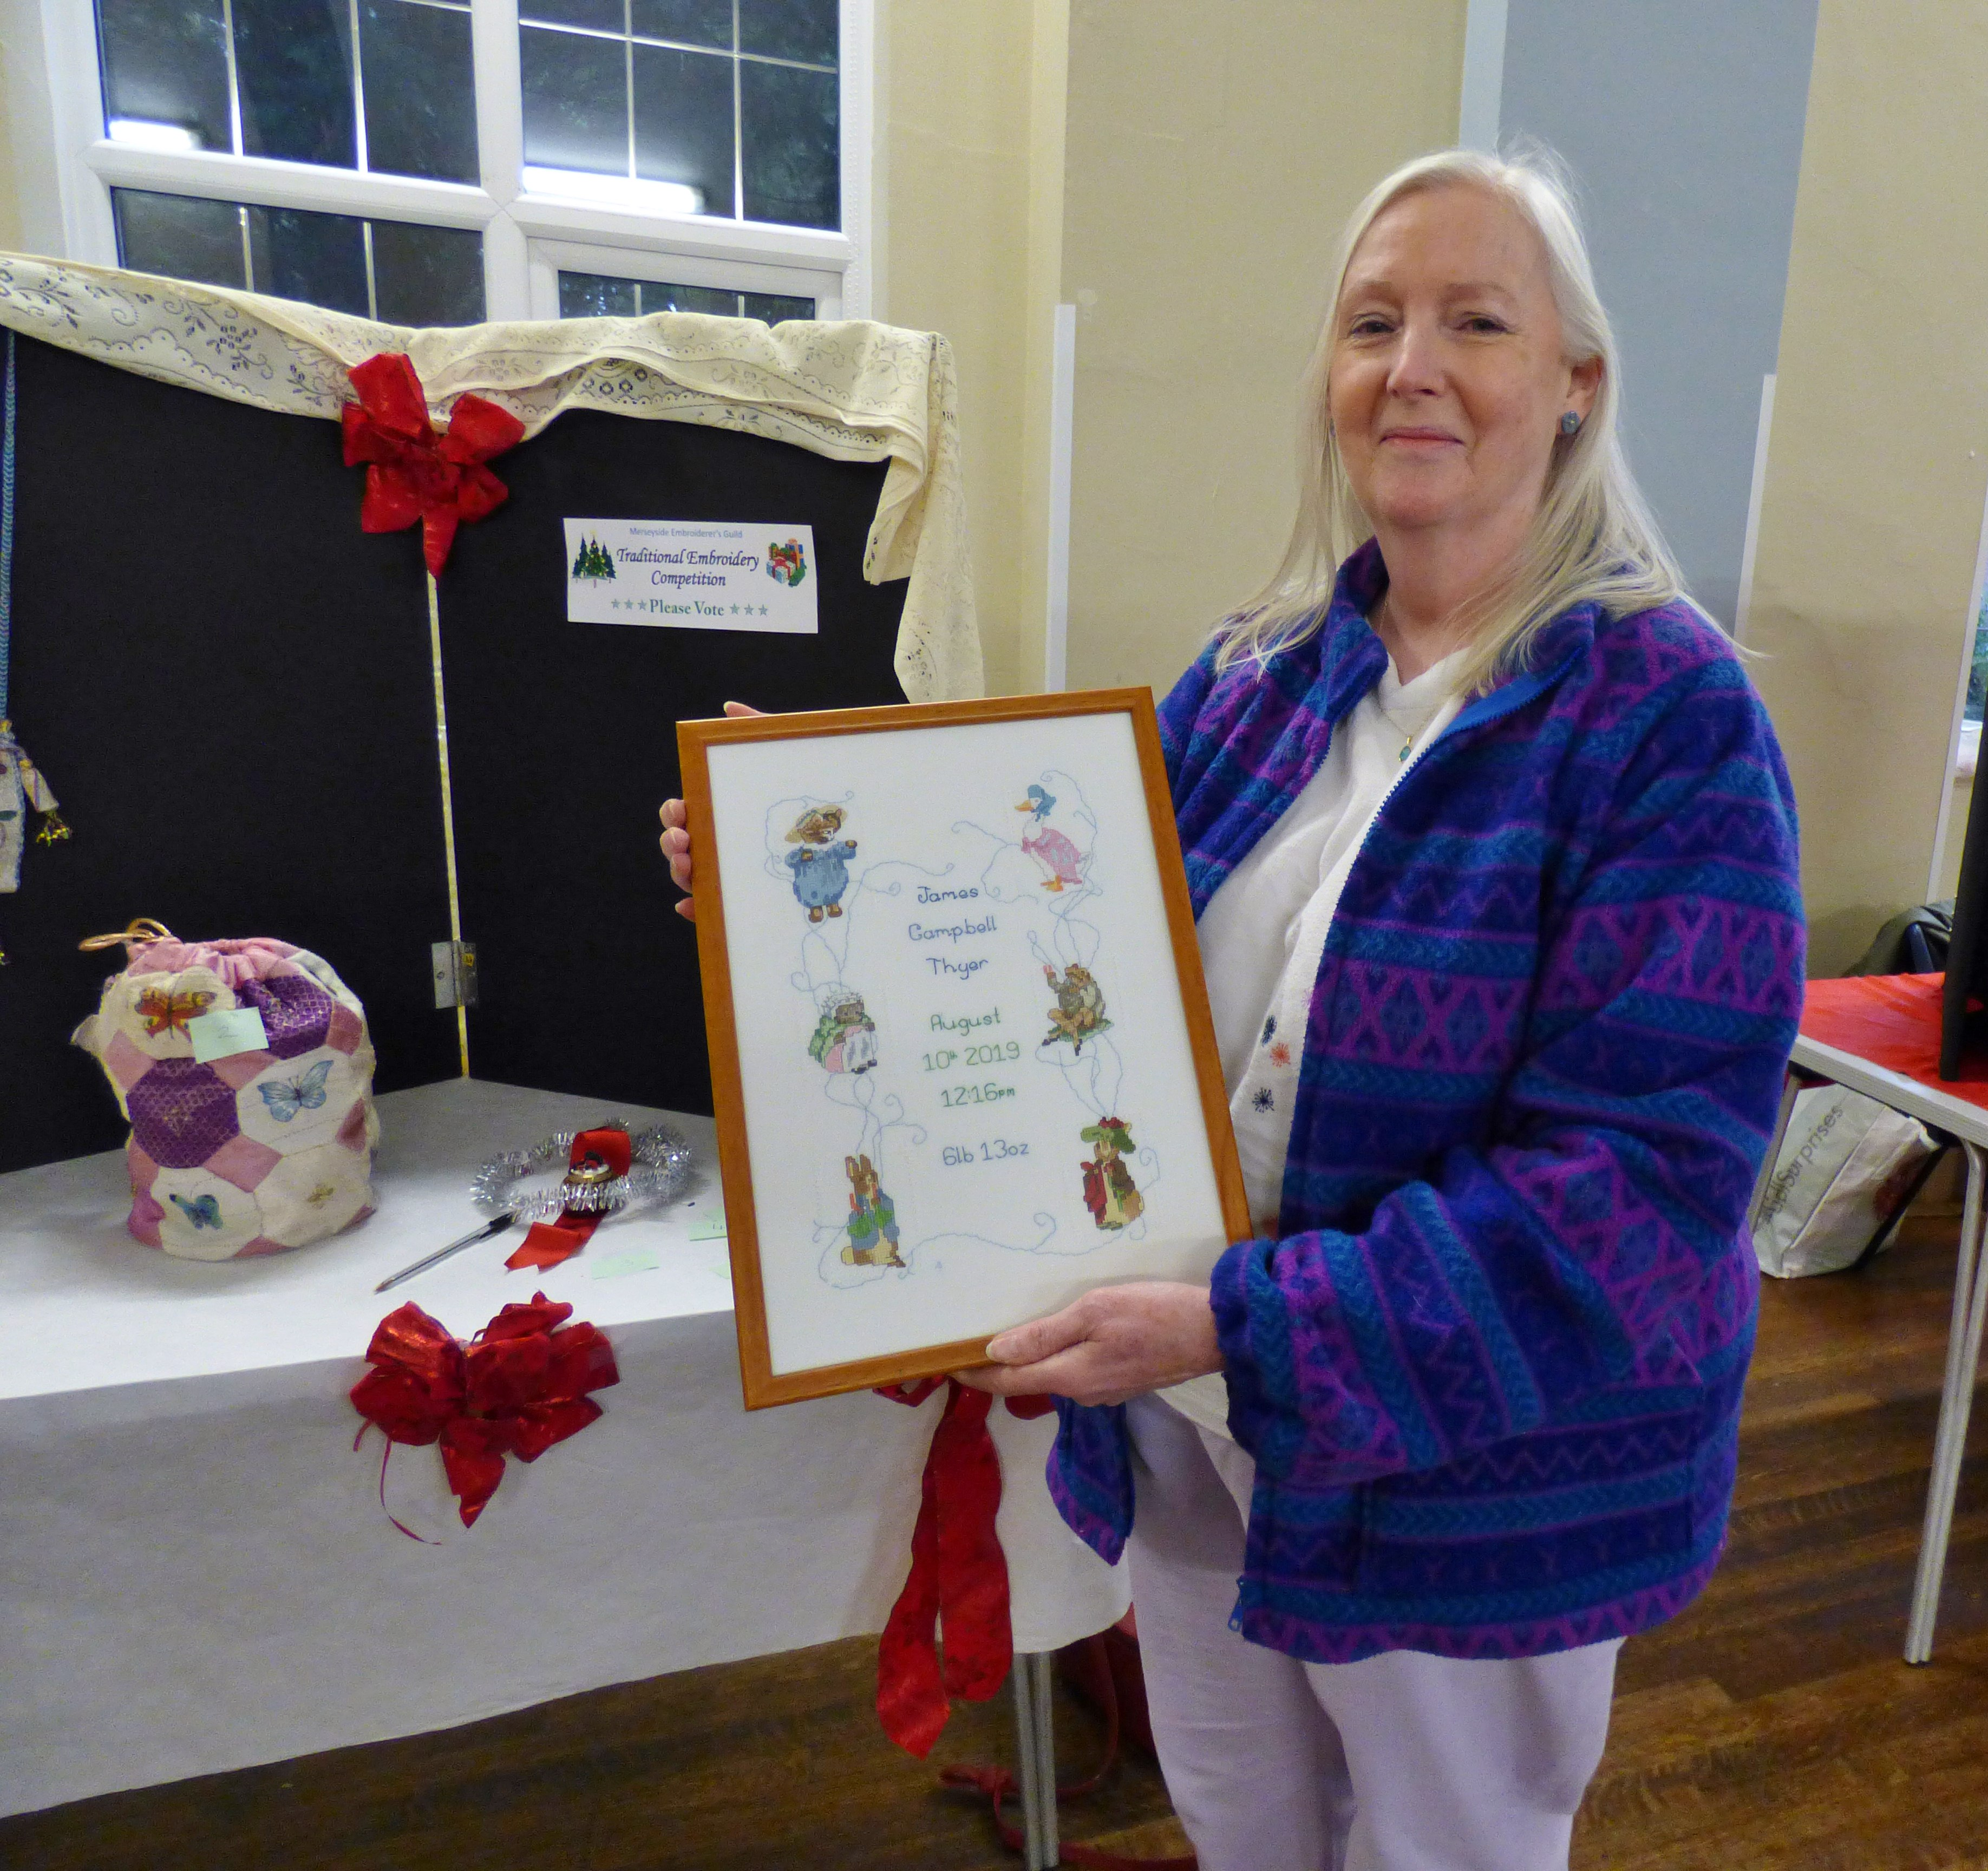 winner of 2019 Traditional Embroidery competition 2019 was Ann Thyer with her beautiful cross stitch birth sampler at MEG Christmas Party 2019